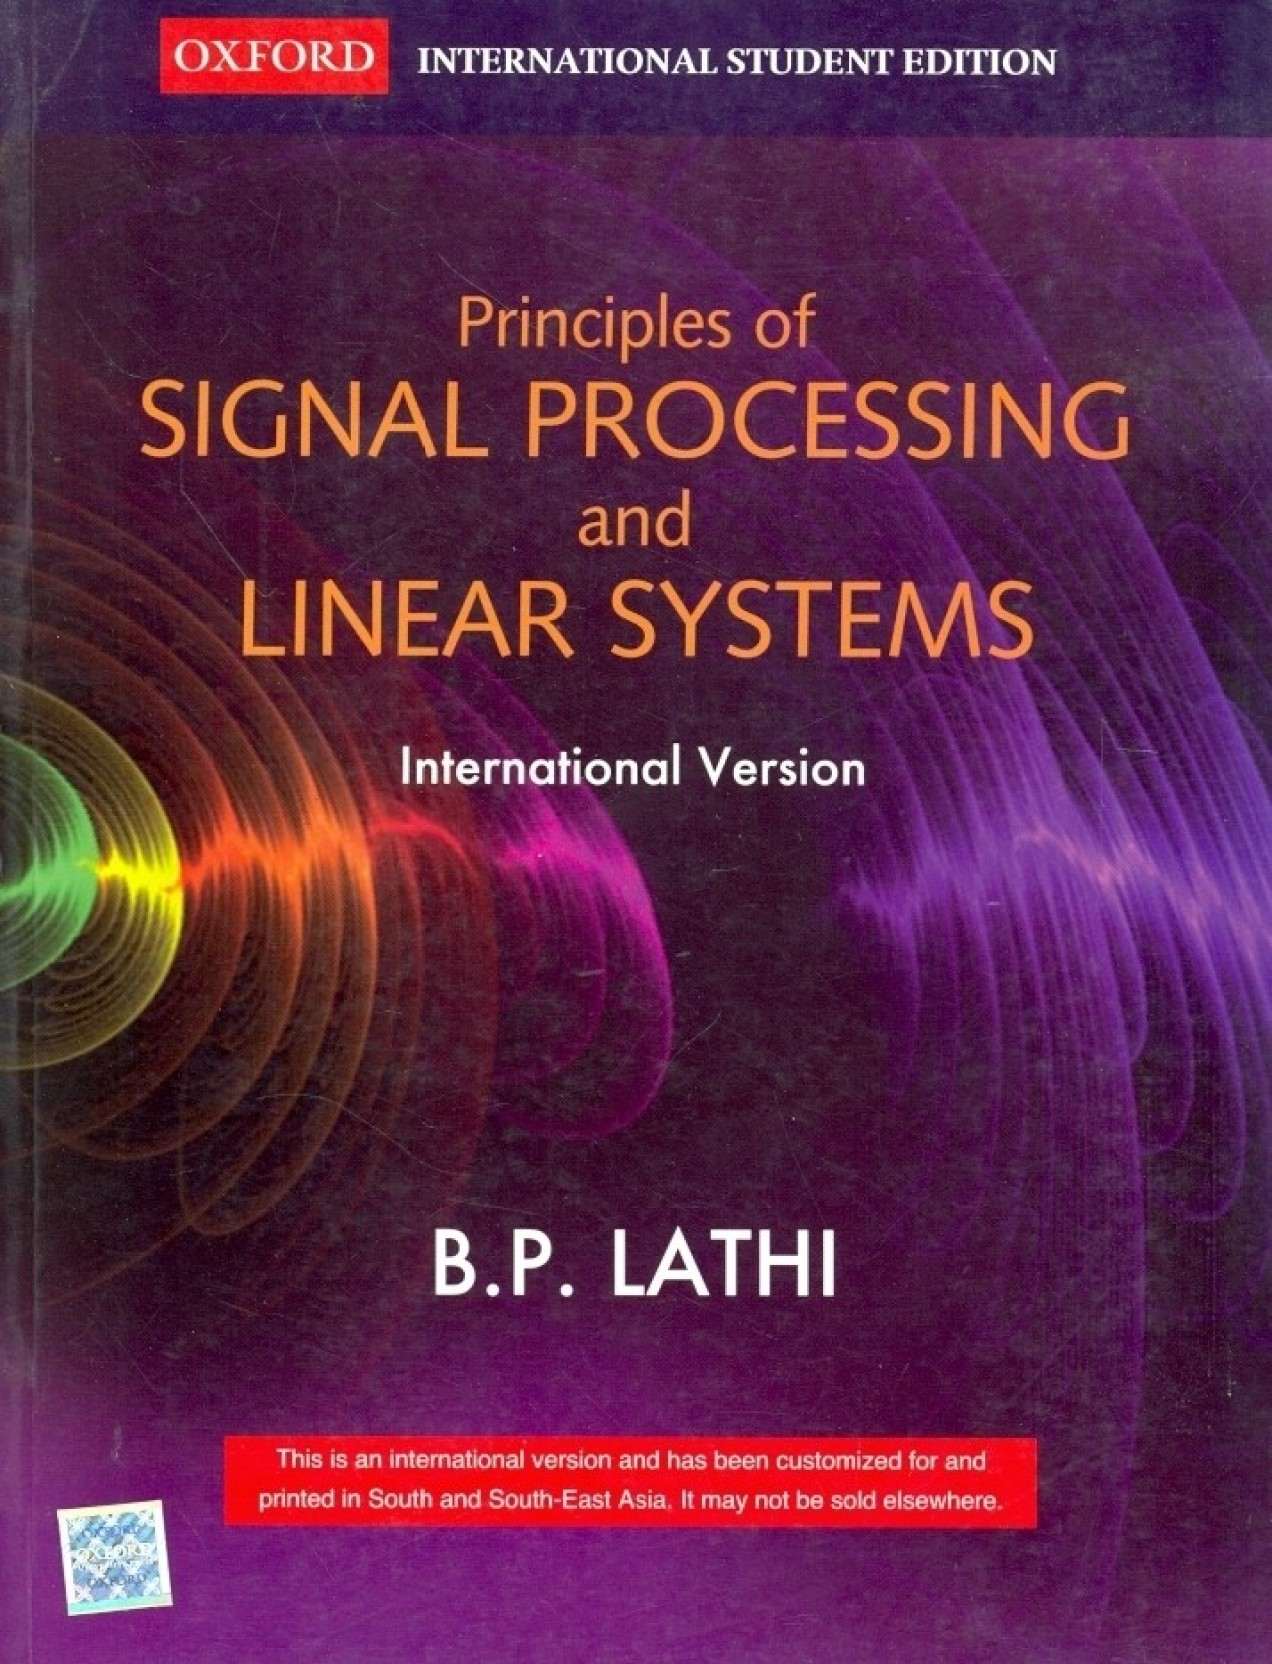 Principles Of Signal Processing And Linear Systems. ADD TO CART